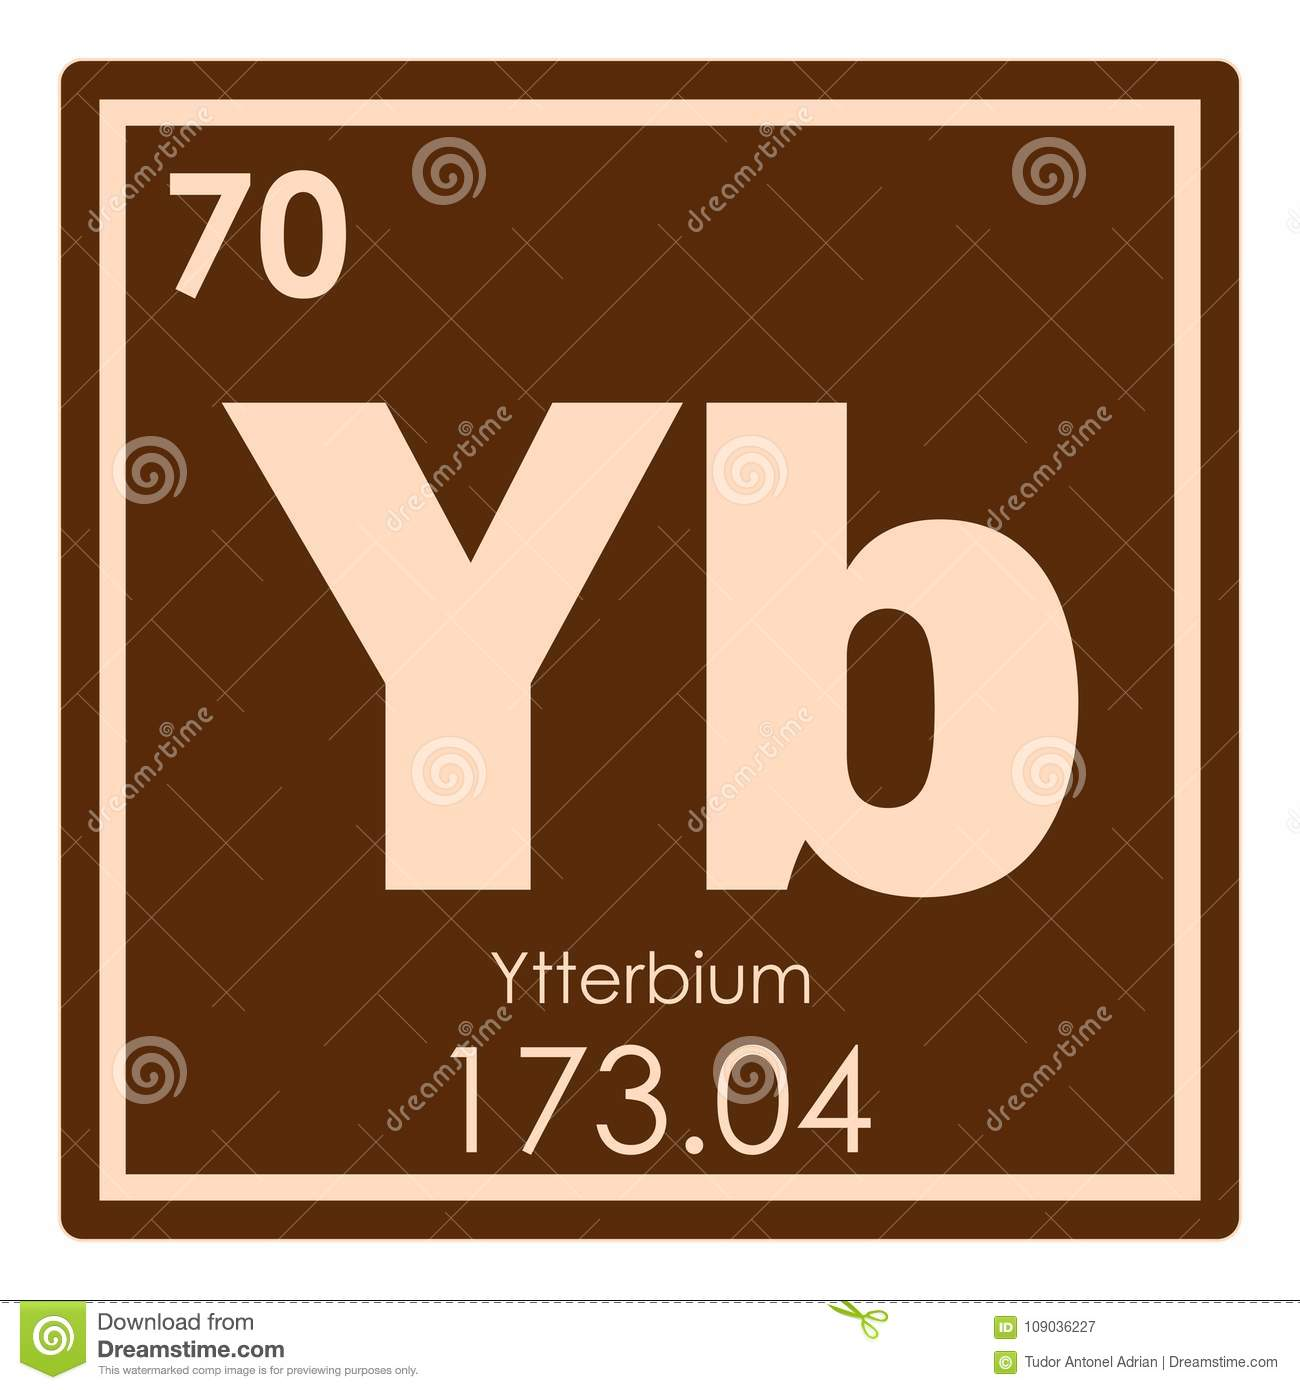 Ytterbium chemical element stock illustration illustration of download ytterbium chemical element stock illustration illustration of periodic 109036227 urtaz Images